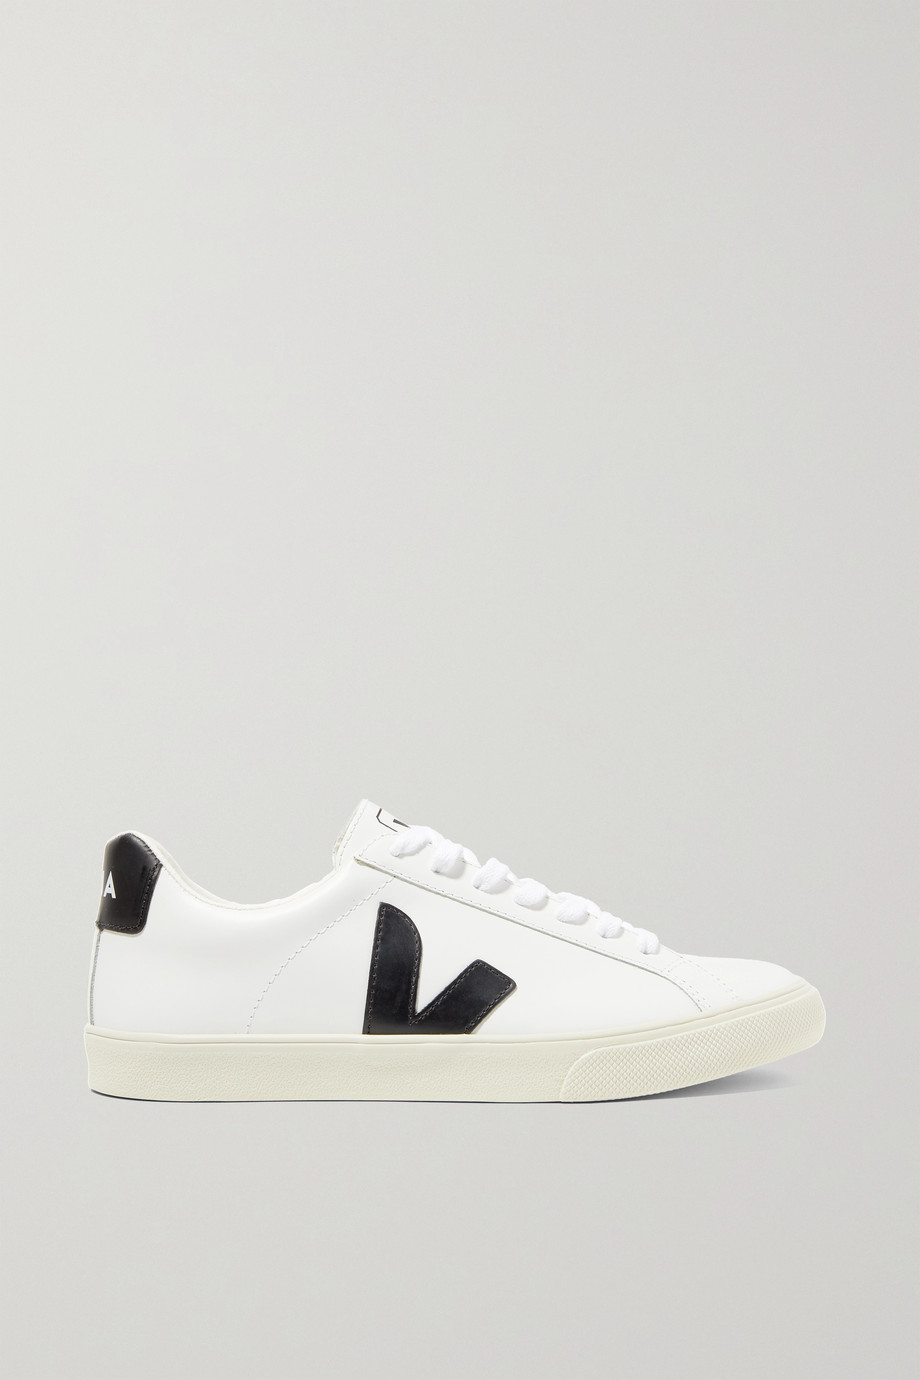 Veja + NET SUSTAIN Esplar rubber-trimmed leather sneakers